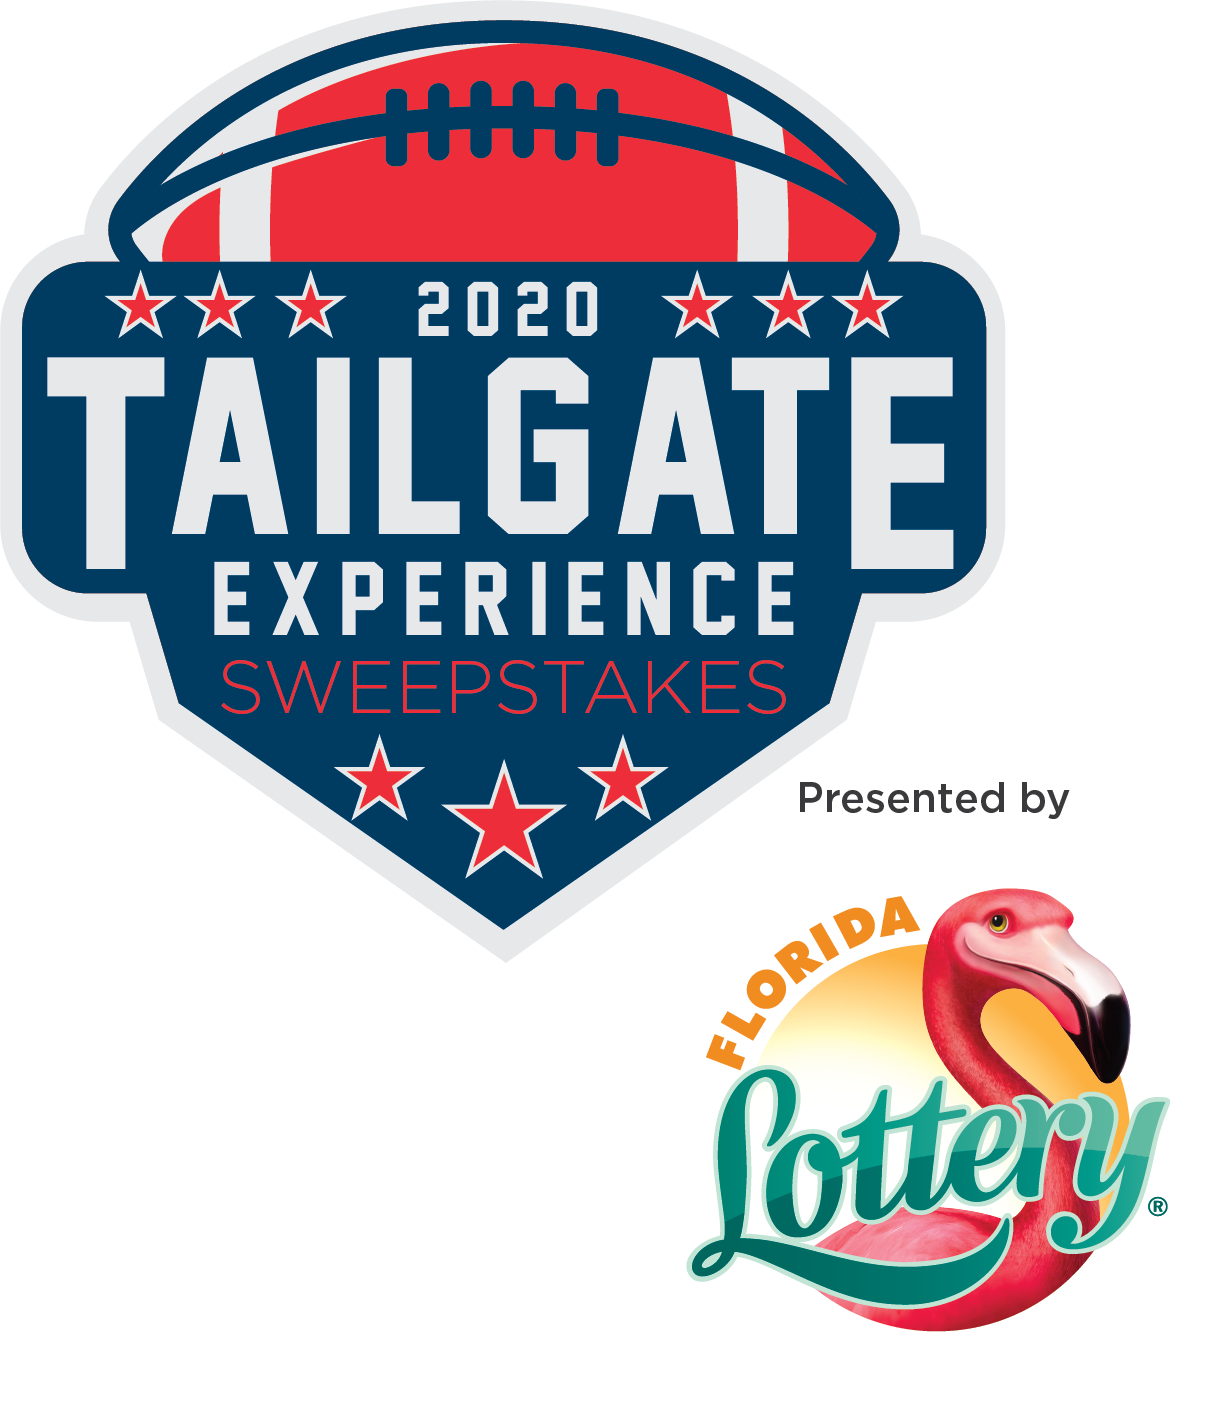 The 2020 Tailgate Experience Sweepstakes